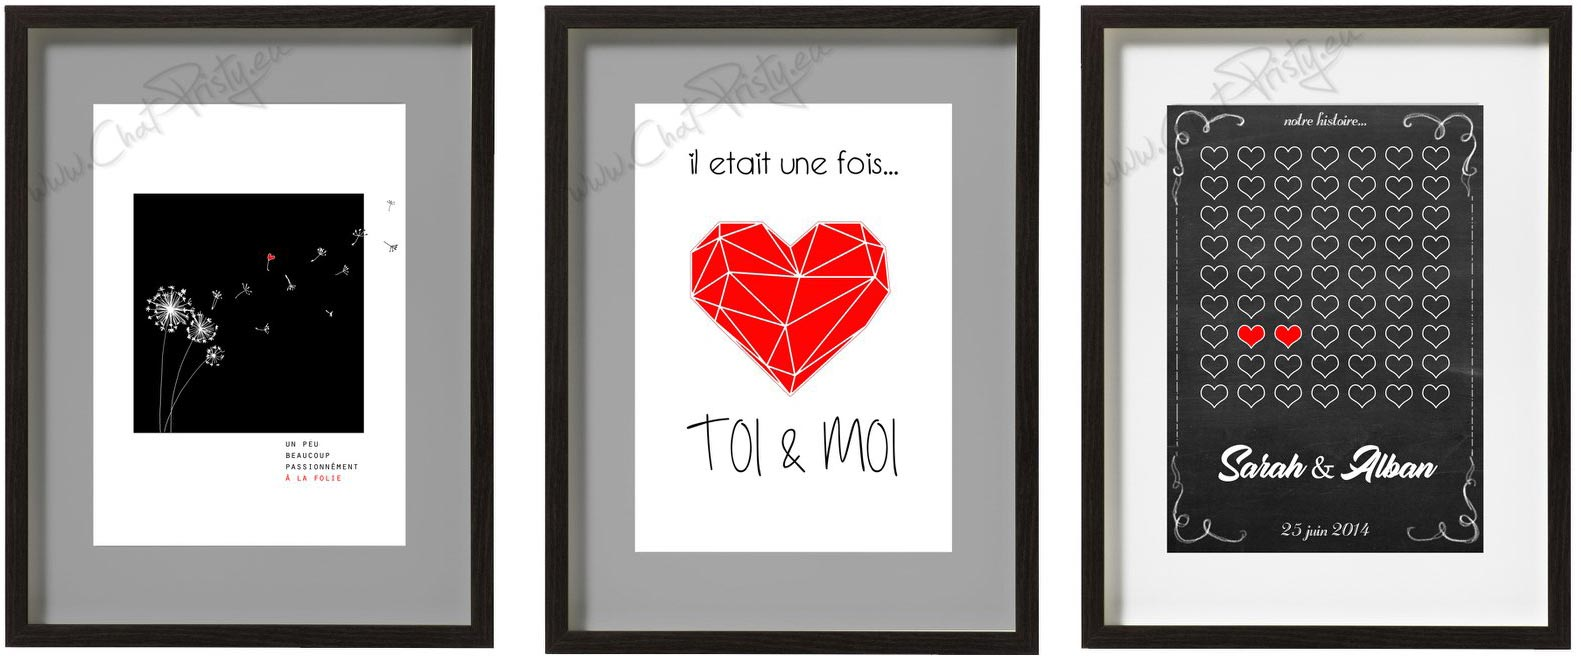 affiche mariage personnalisé couple amour